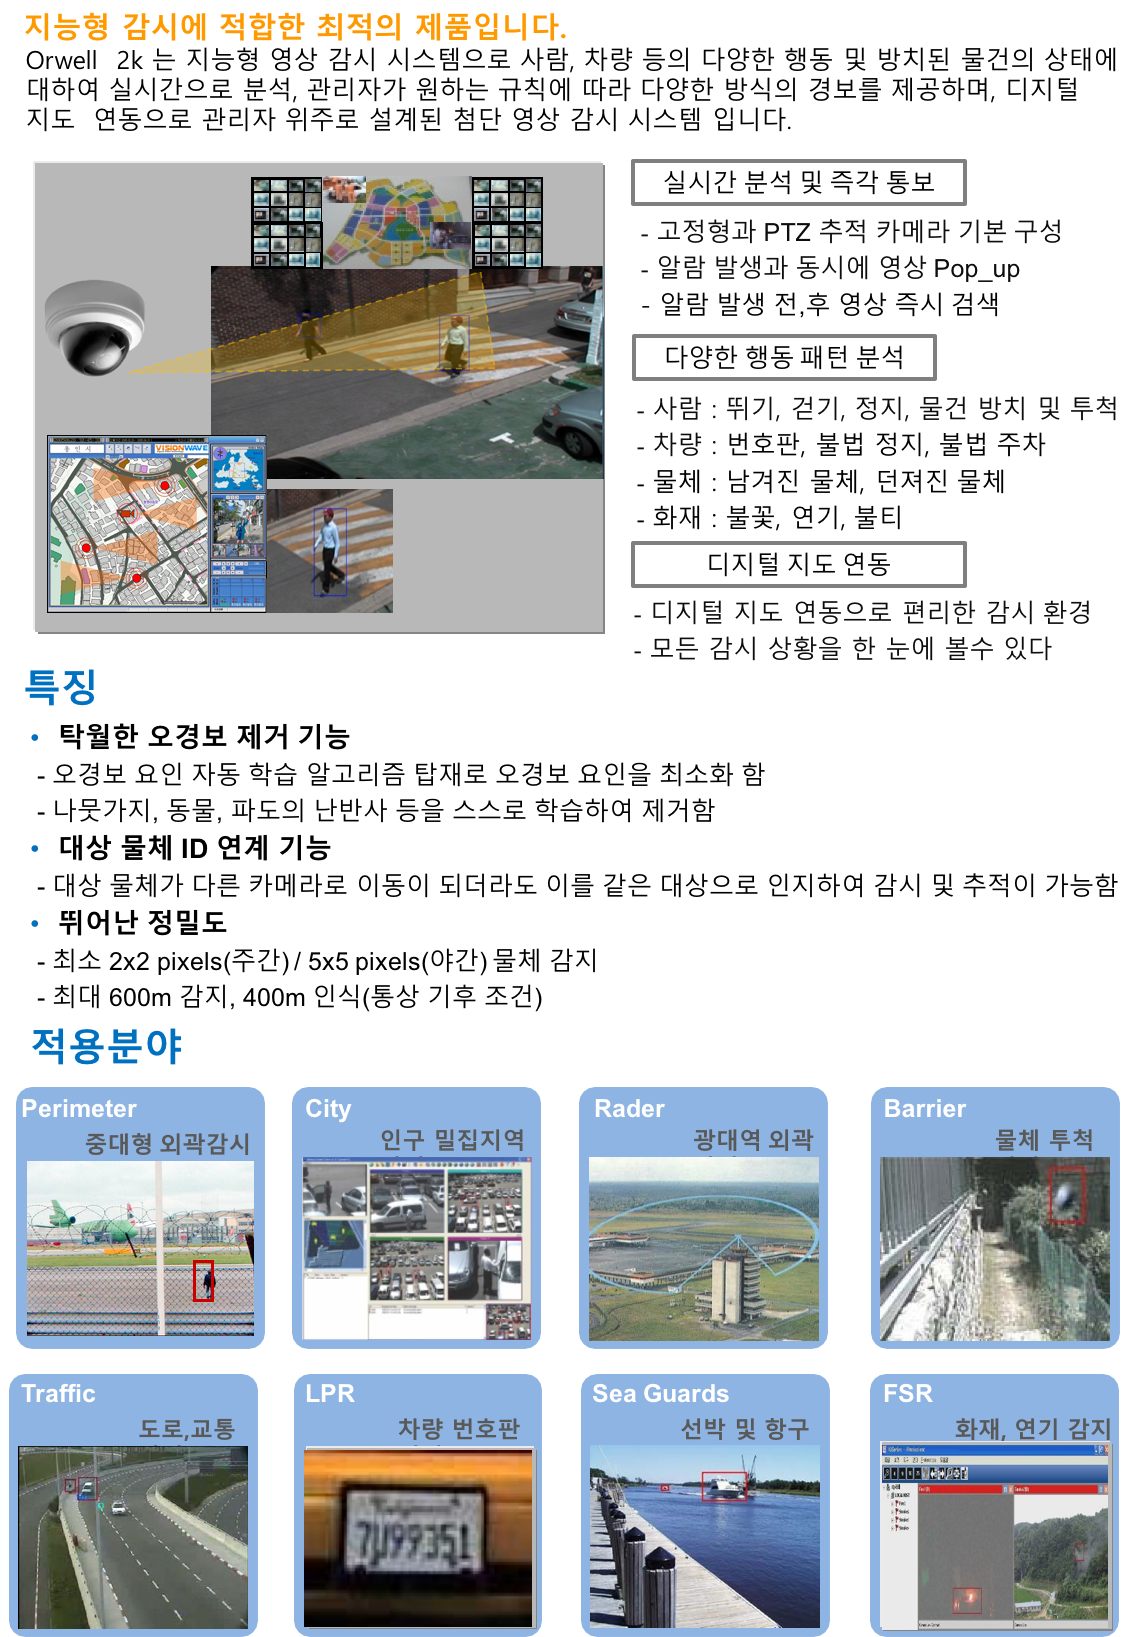 http://www.withnts.com/images/rk-0144/sub/sub_img_2_16.png